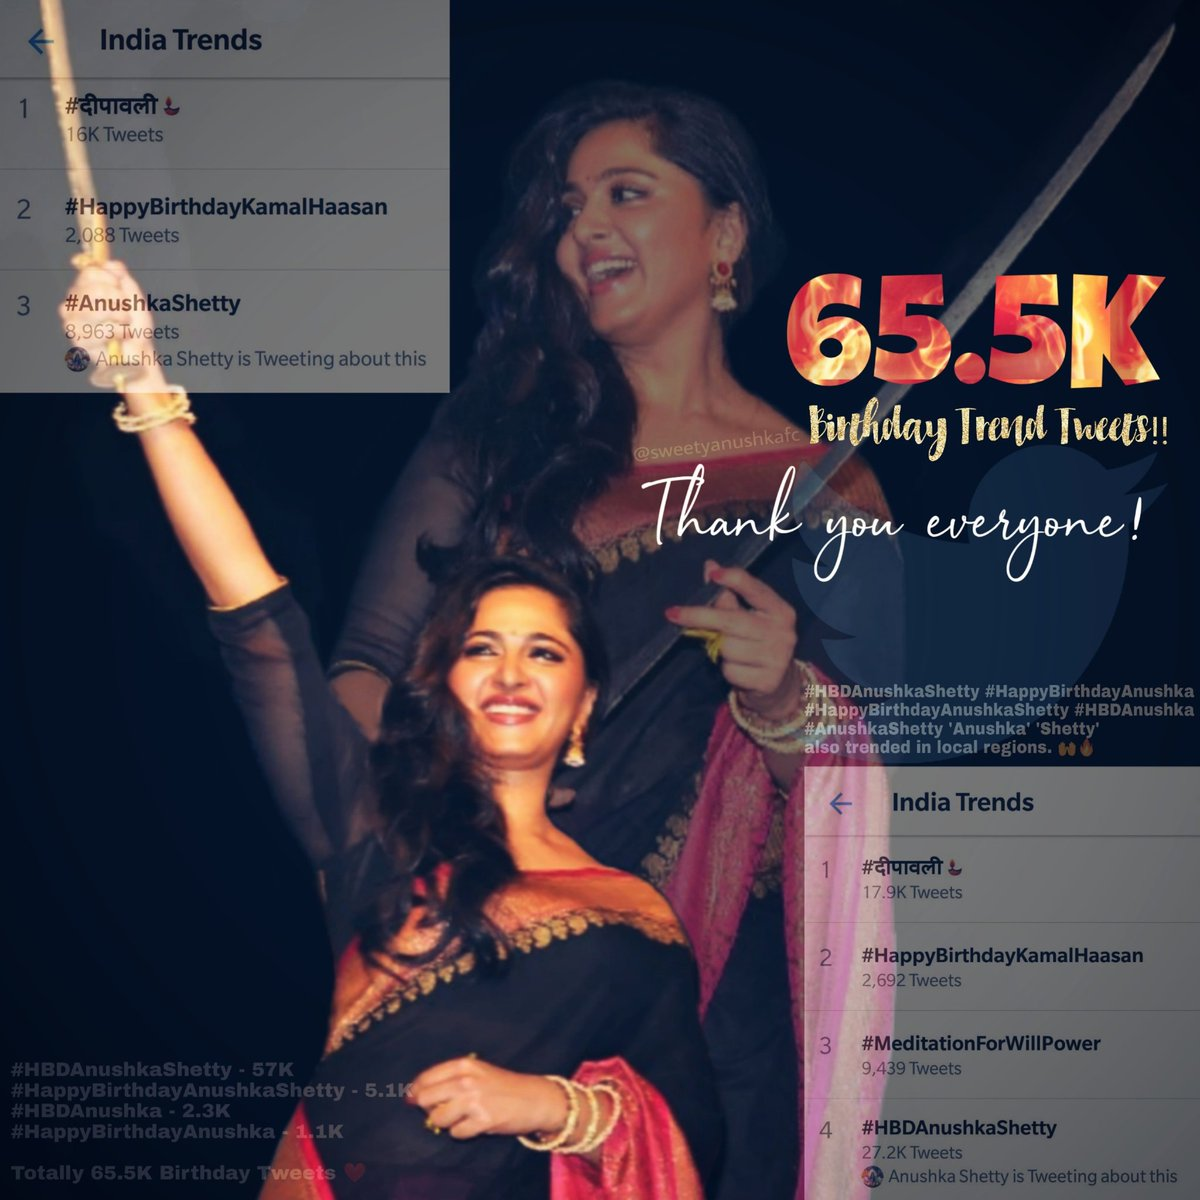 A record count for the year once again!!! #HBDAnushkaShetty - 57K #HappyBirthdayAnushkaShetty -5.1K #HBDAnushka -2.3K #HappyBirthdayAnushka -1.1K Anushka Shetty trended in local regions & #AnushkaShetty #HBDAnushkaShetty trended all over India!!!🌟🔥🙌 Total 65.5K Masss🙏❤